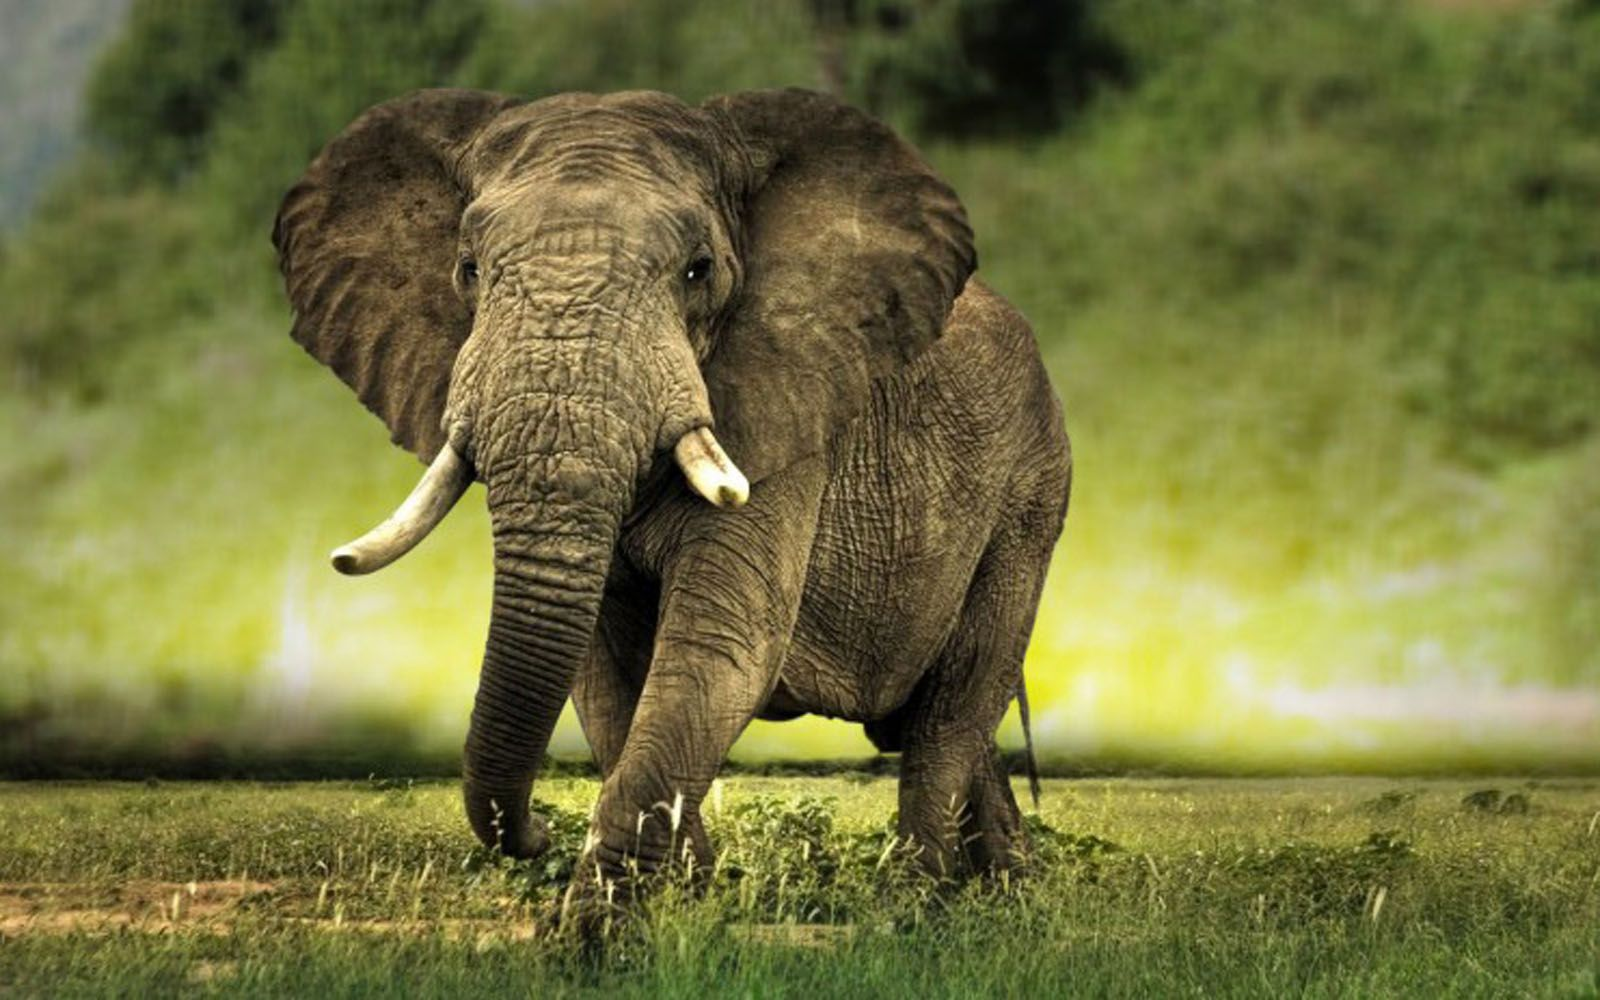 elephant wallpaper amazing wallpaper High Resolution